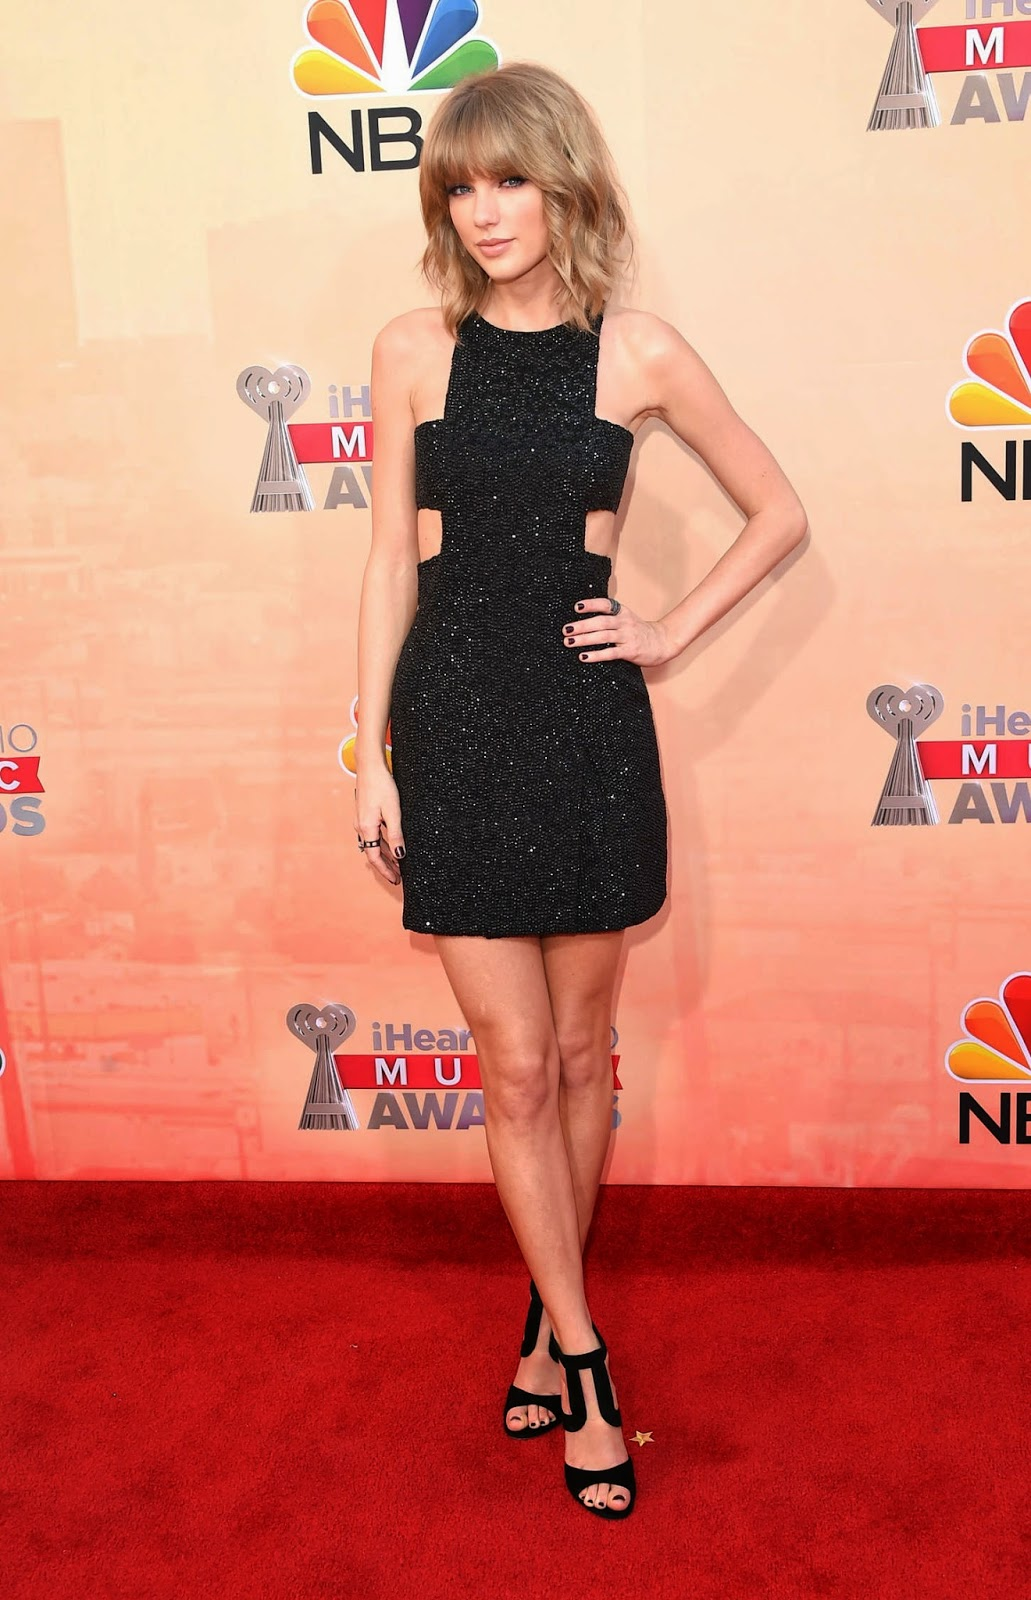 Taylor Swift goes sexy in a black mini dress at the 2015 iHeartRadio Music Awards in LA